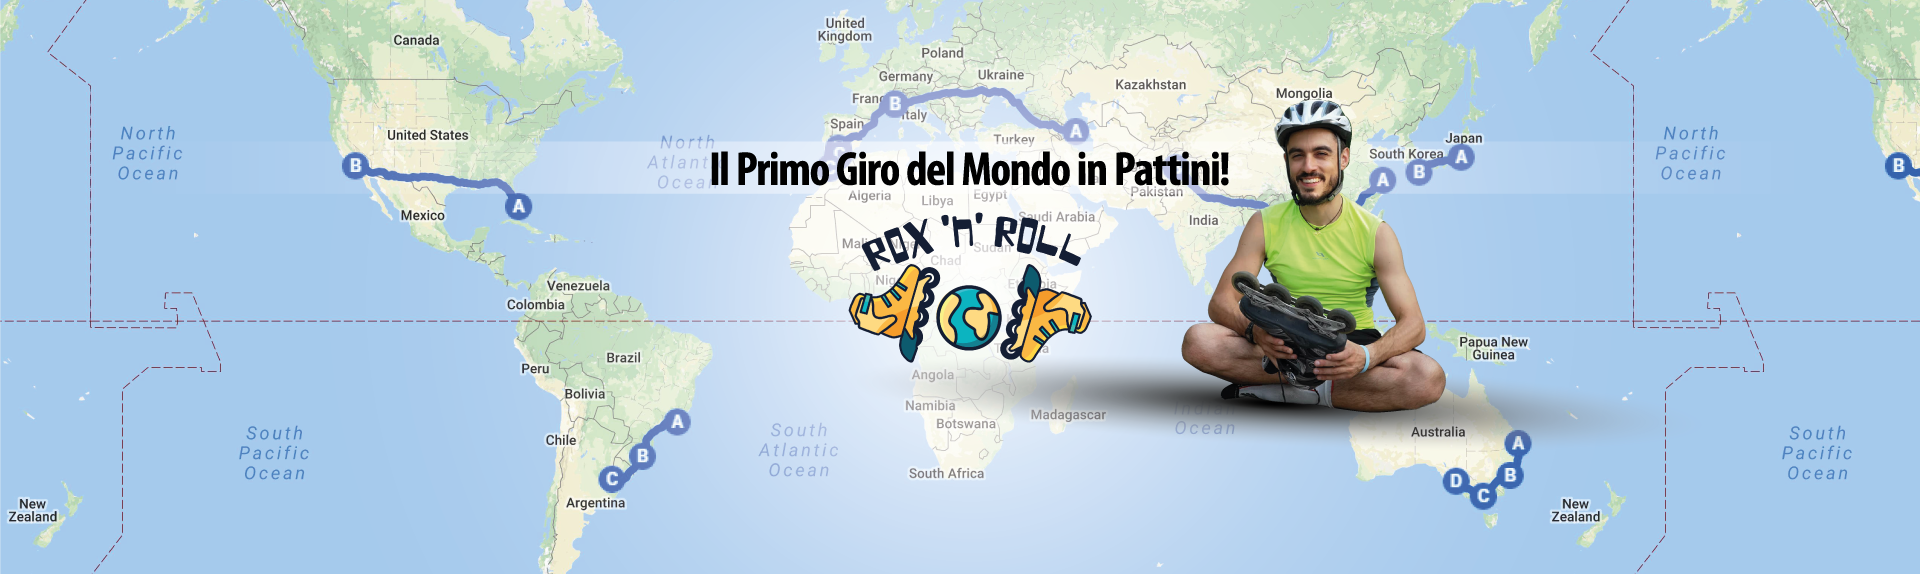 #roxbax il primo giro del mondo in pattini